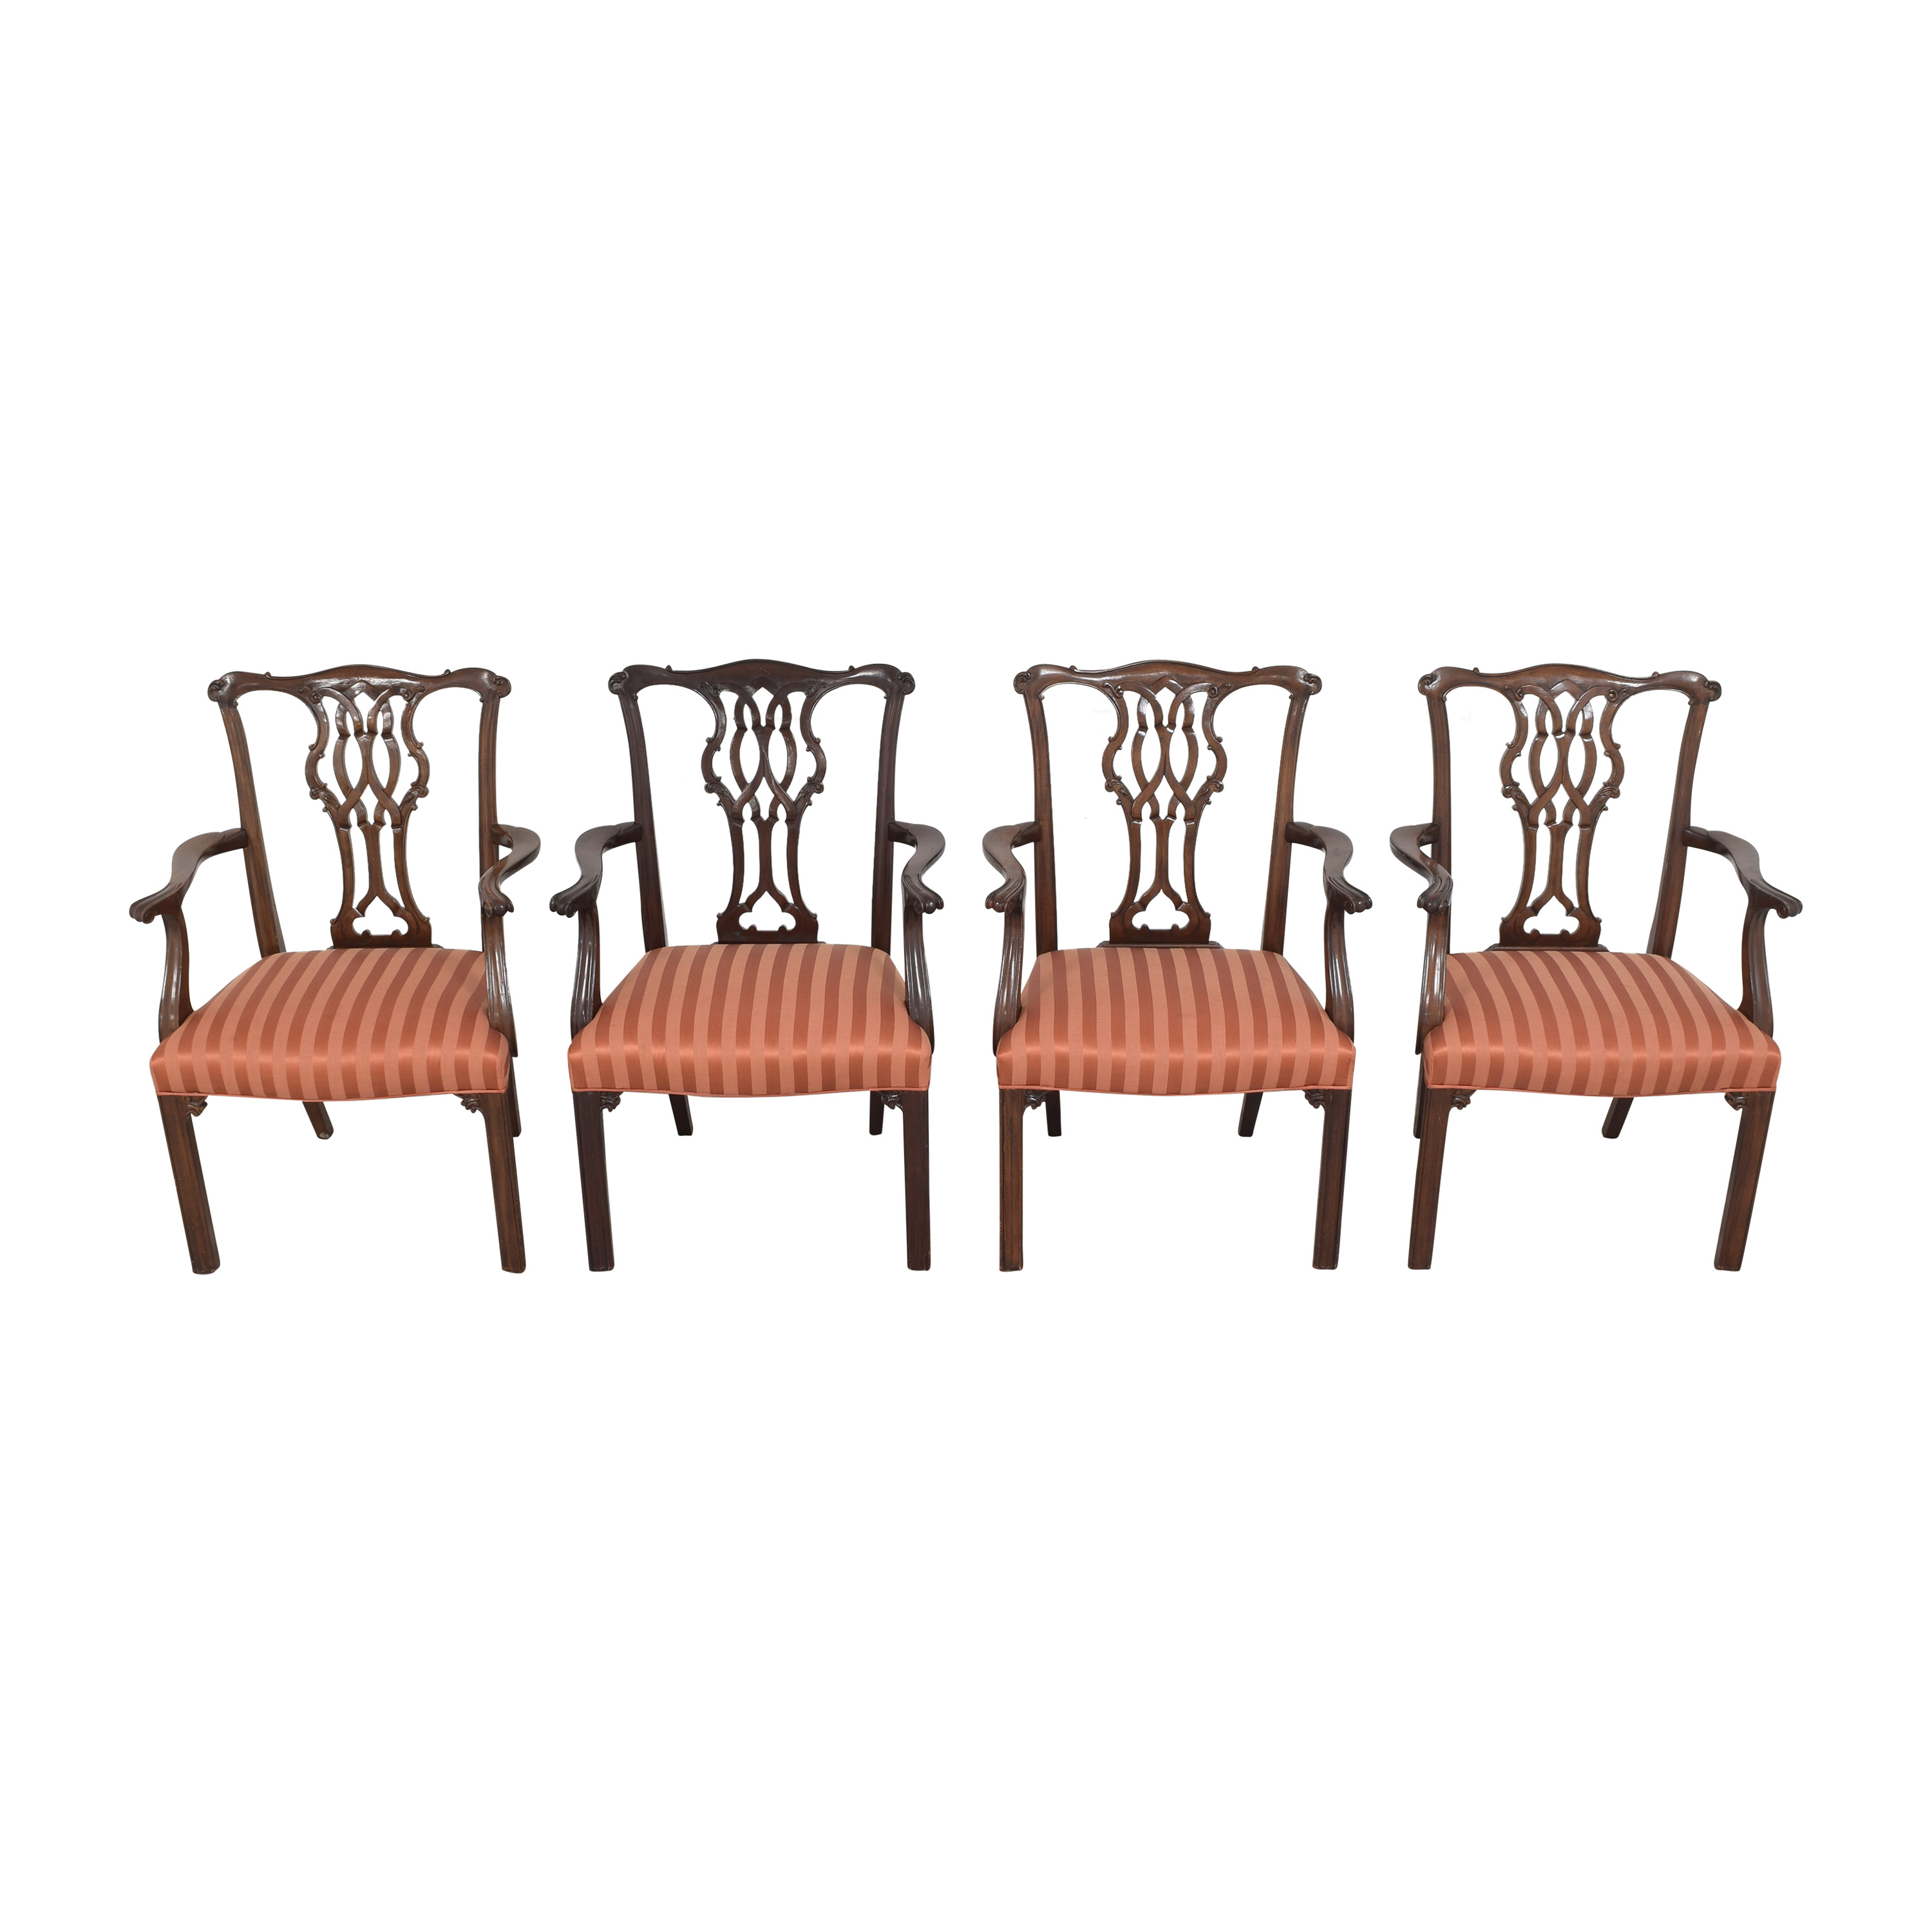 Baker Furniture Chippendale Dining Chairs / Chairs